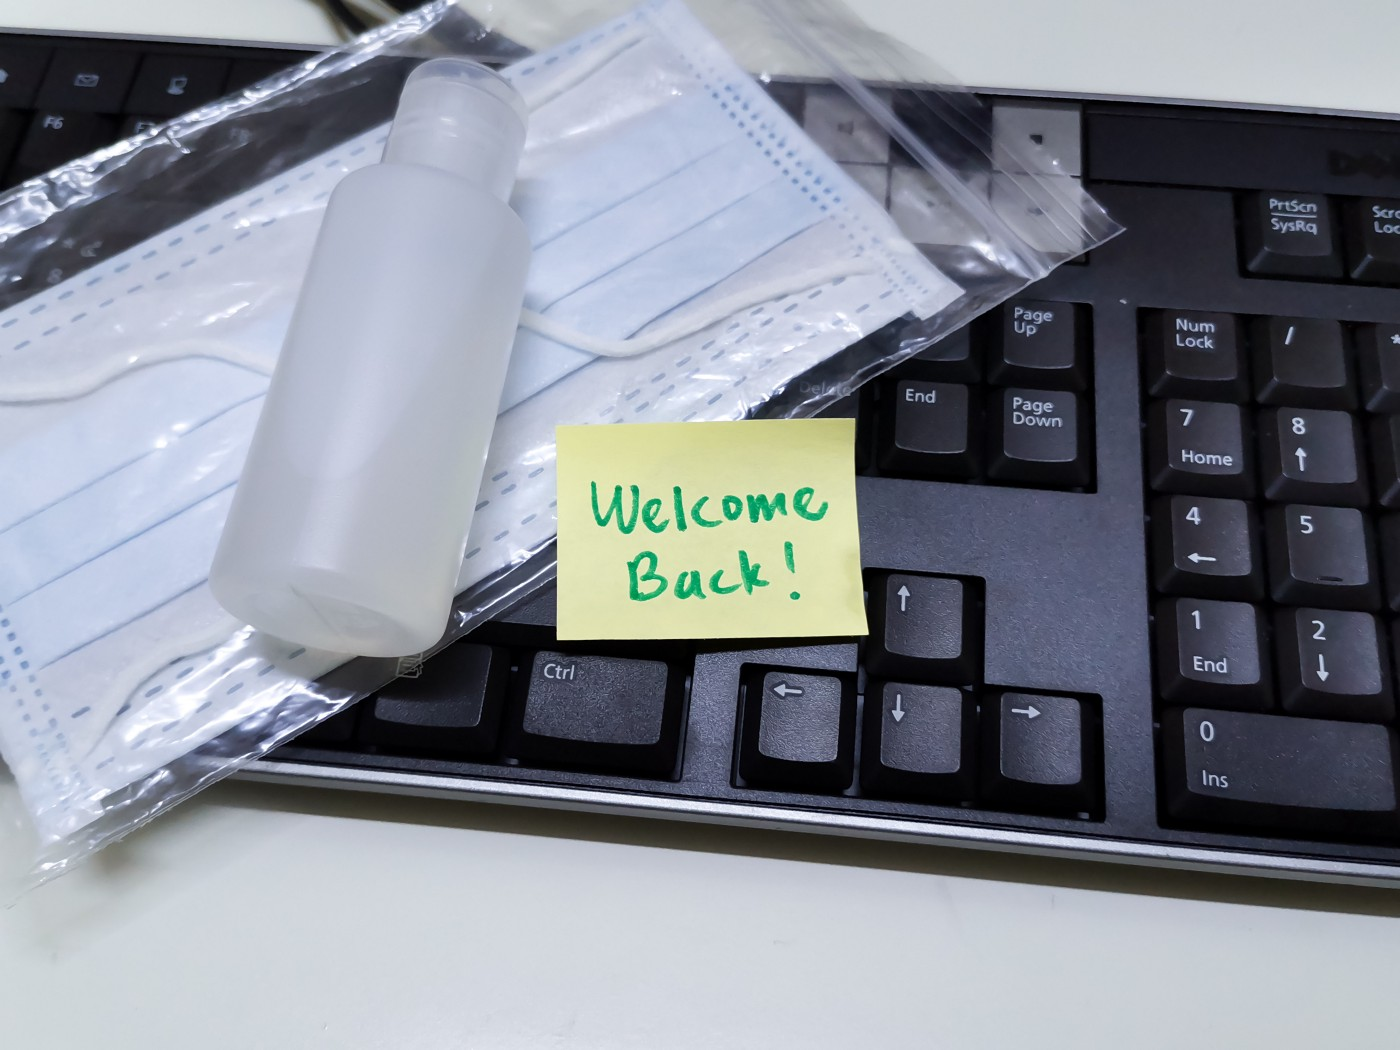 Masks, hand sanitizer, social distancing: welcome back to the office during COVID-19